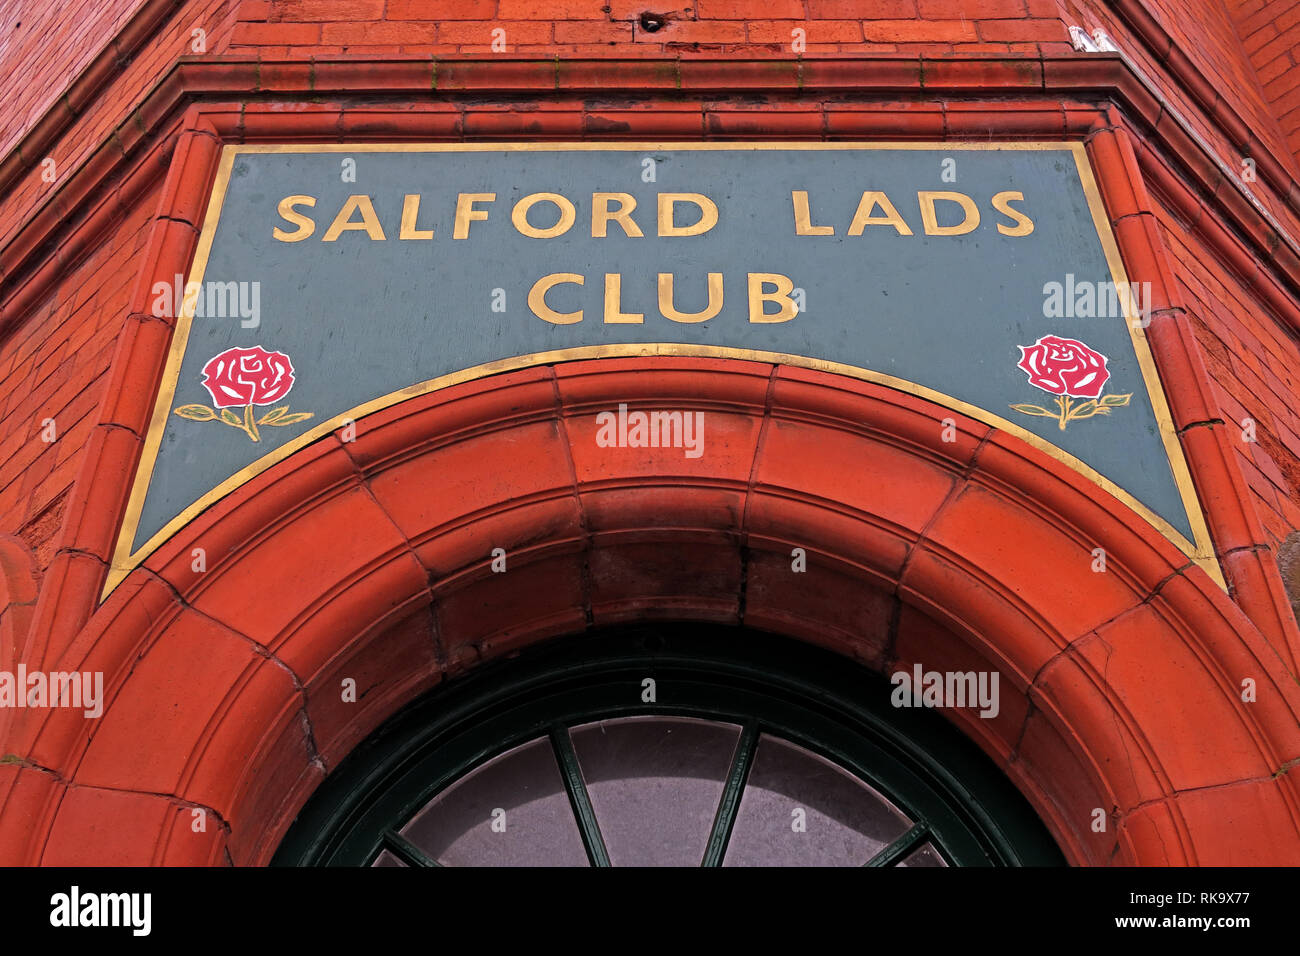 Salford Lads Club doorway, as featured in The Smiths album, The Queen Is Dead, Saint Ignatius Walk, Salford, Lancashire, North West England, UK,M5 3RX Stock Photo